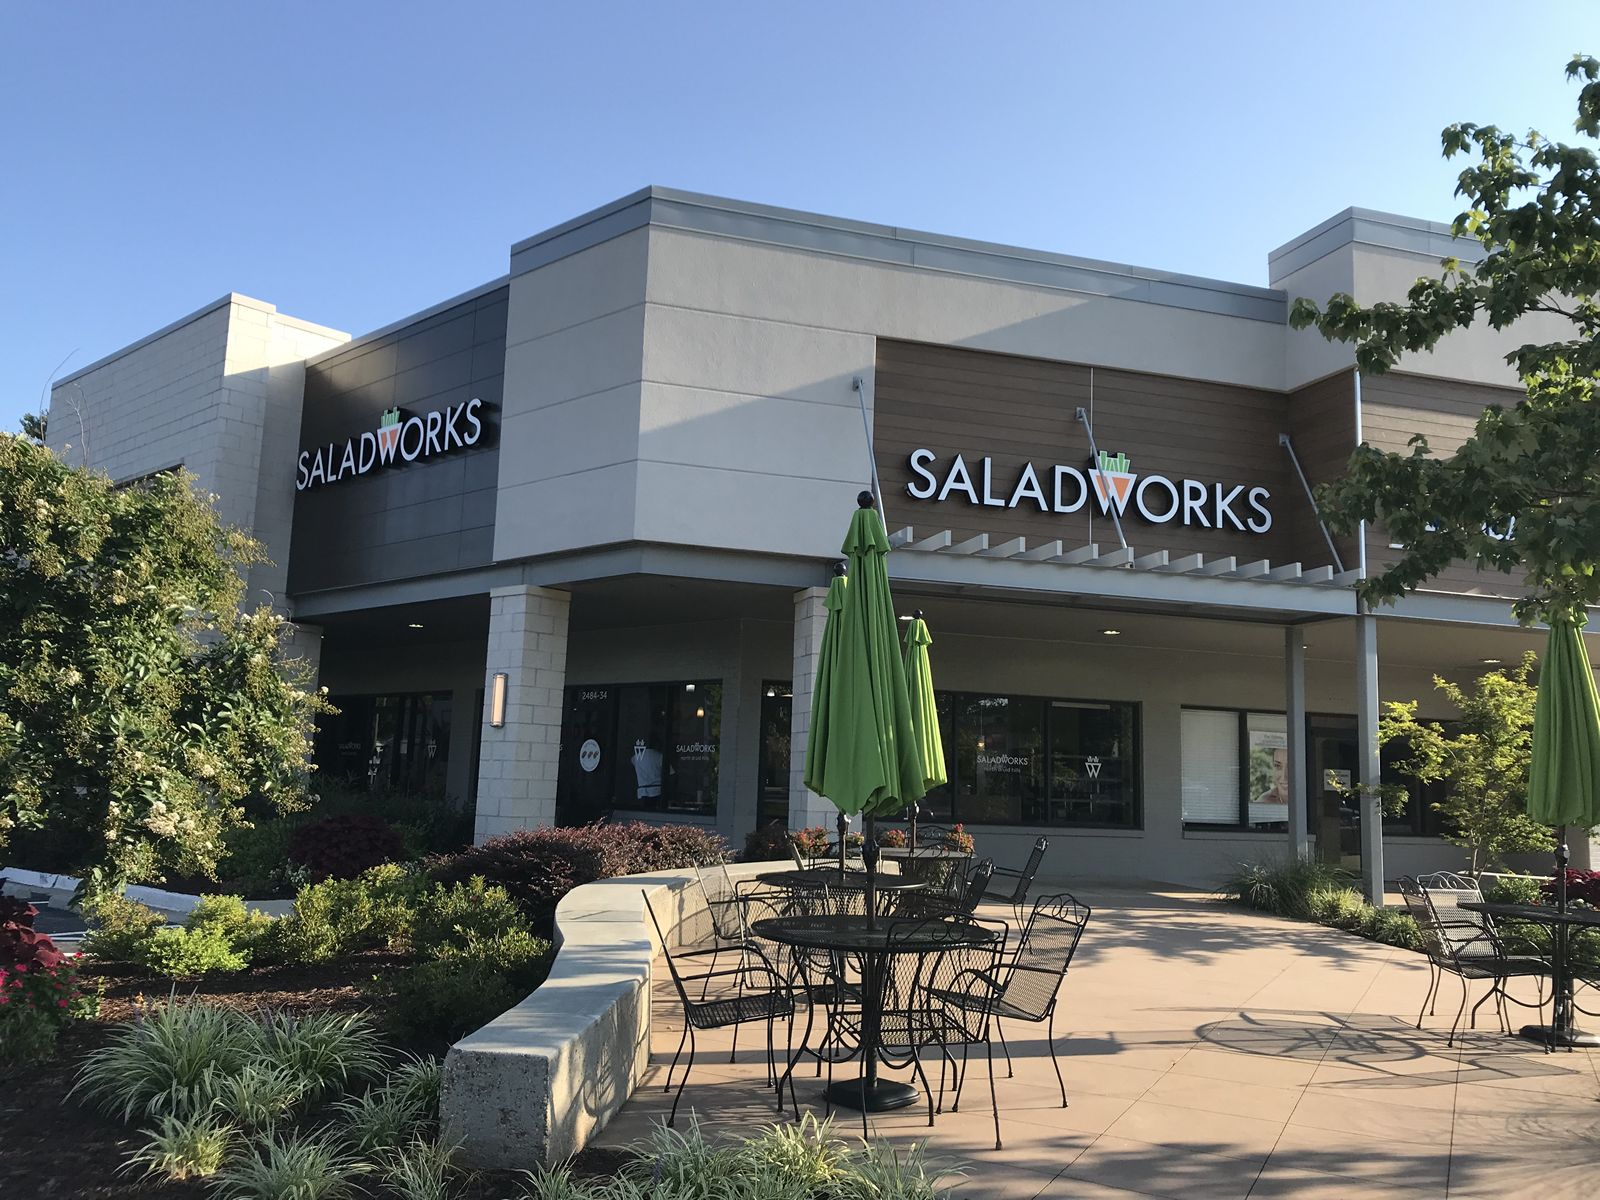 Saladworks, the Nation's Leading Salad-Centric Franchise Brand, Opens First Atlanta Location